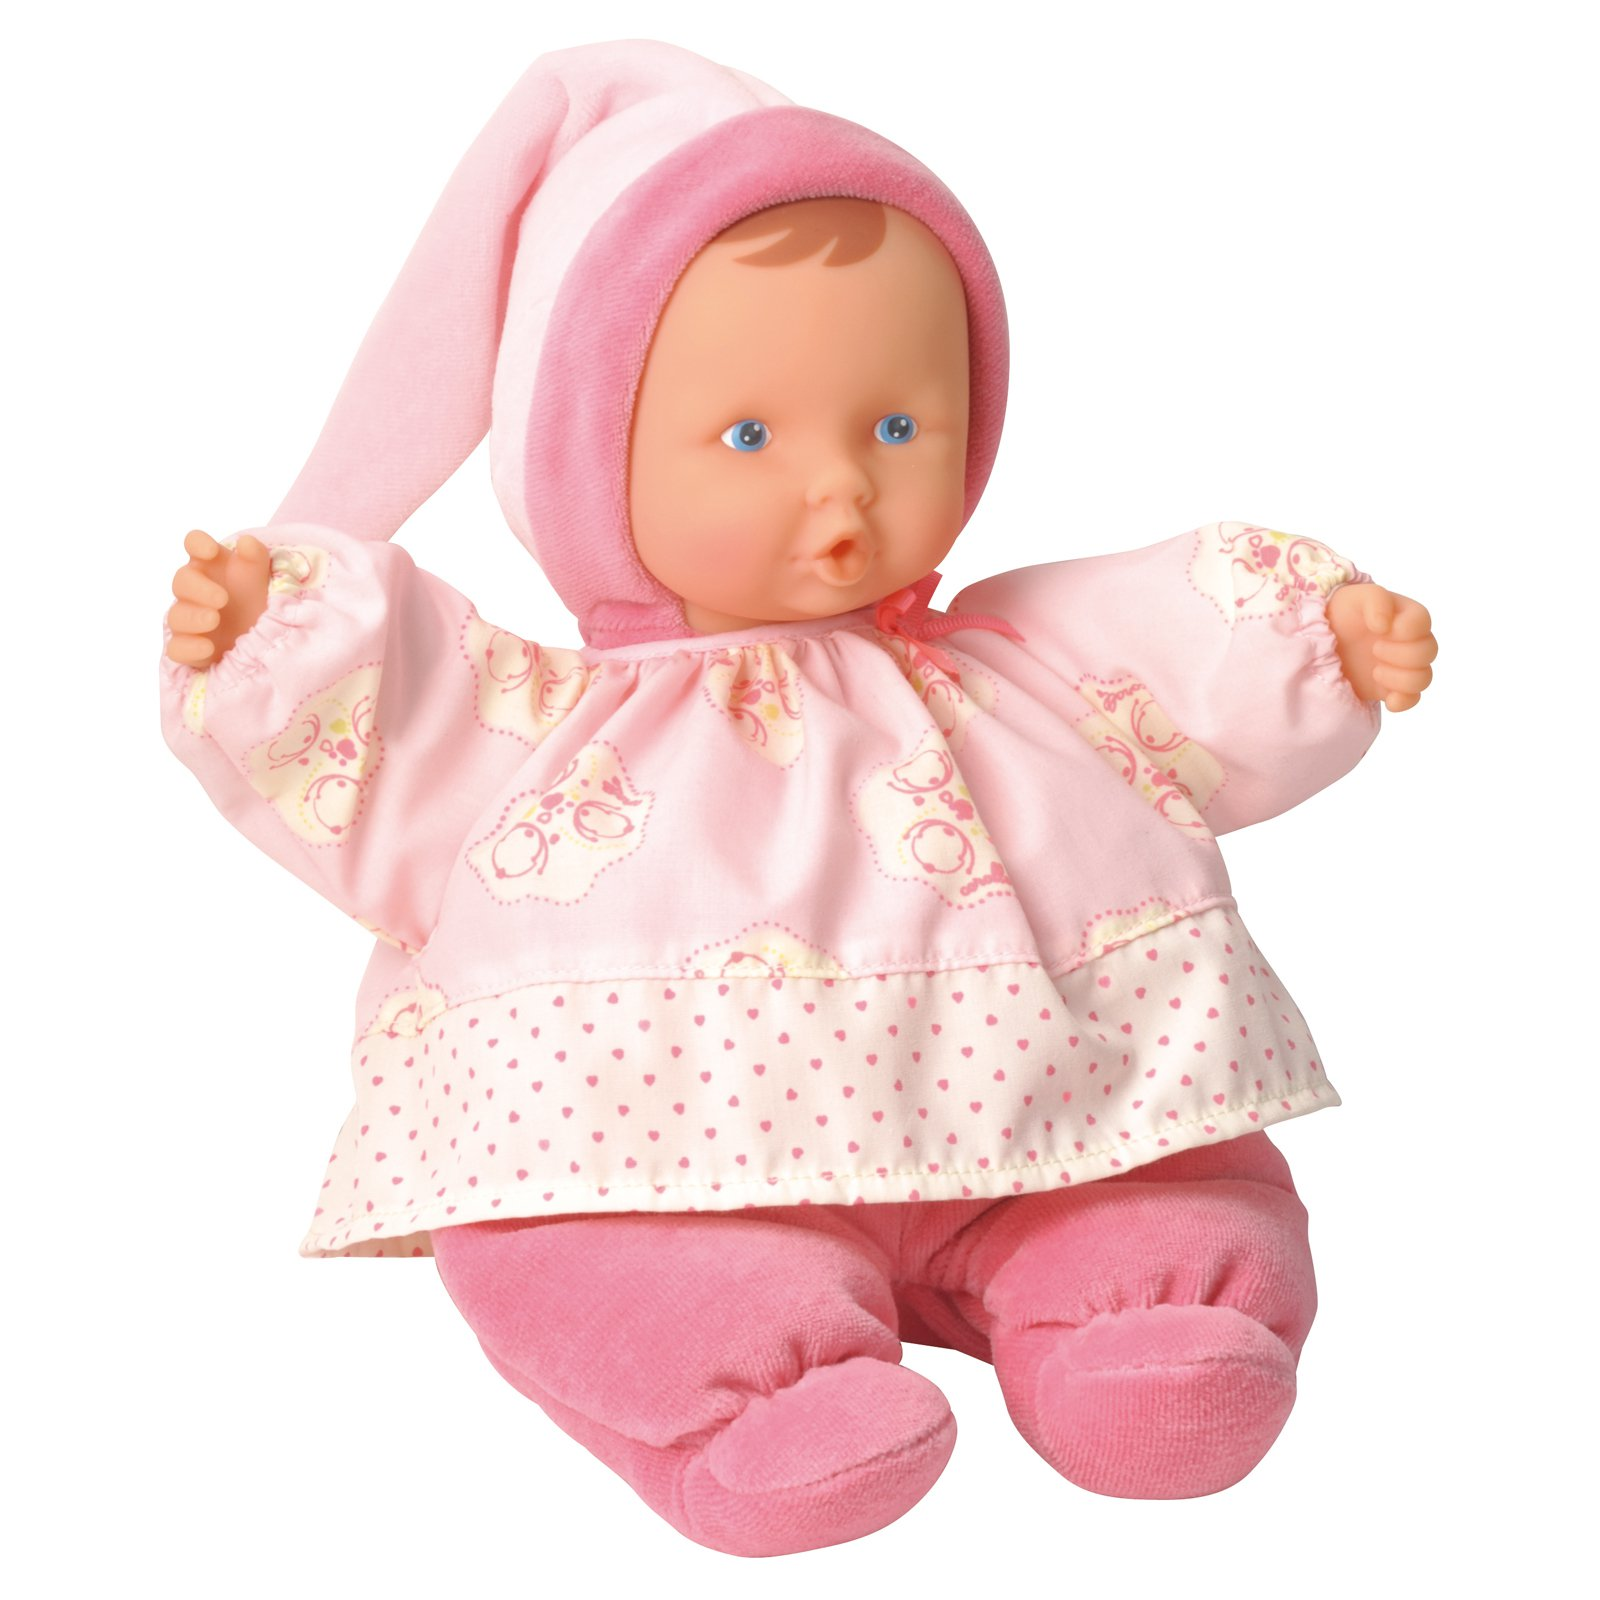 Corolle Barbicorolle Babipouce Pink Cotton Flower 11 in. Doll